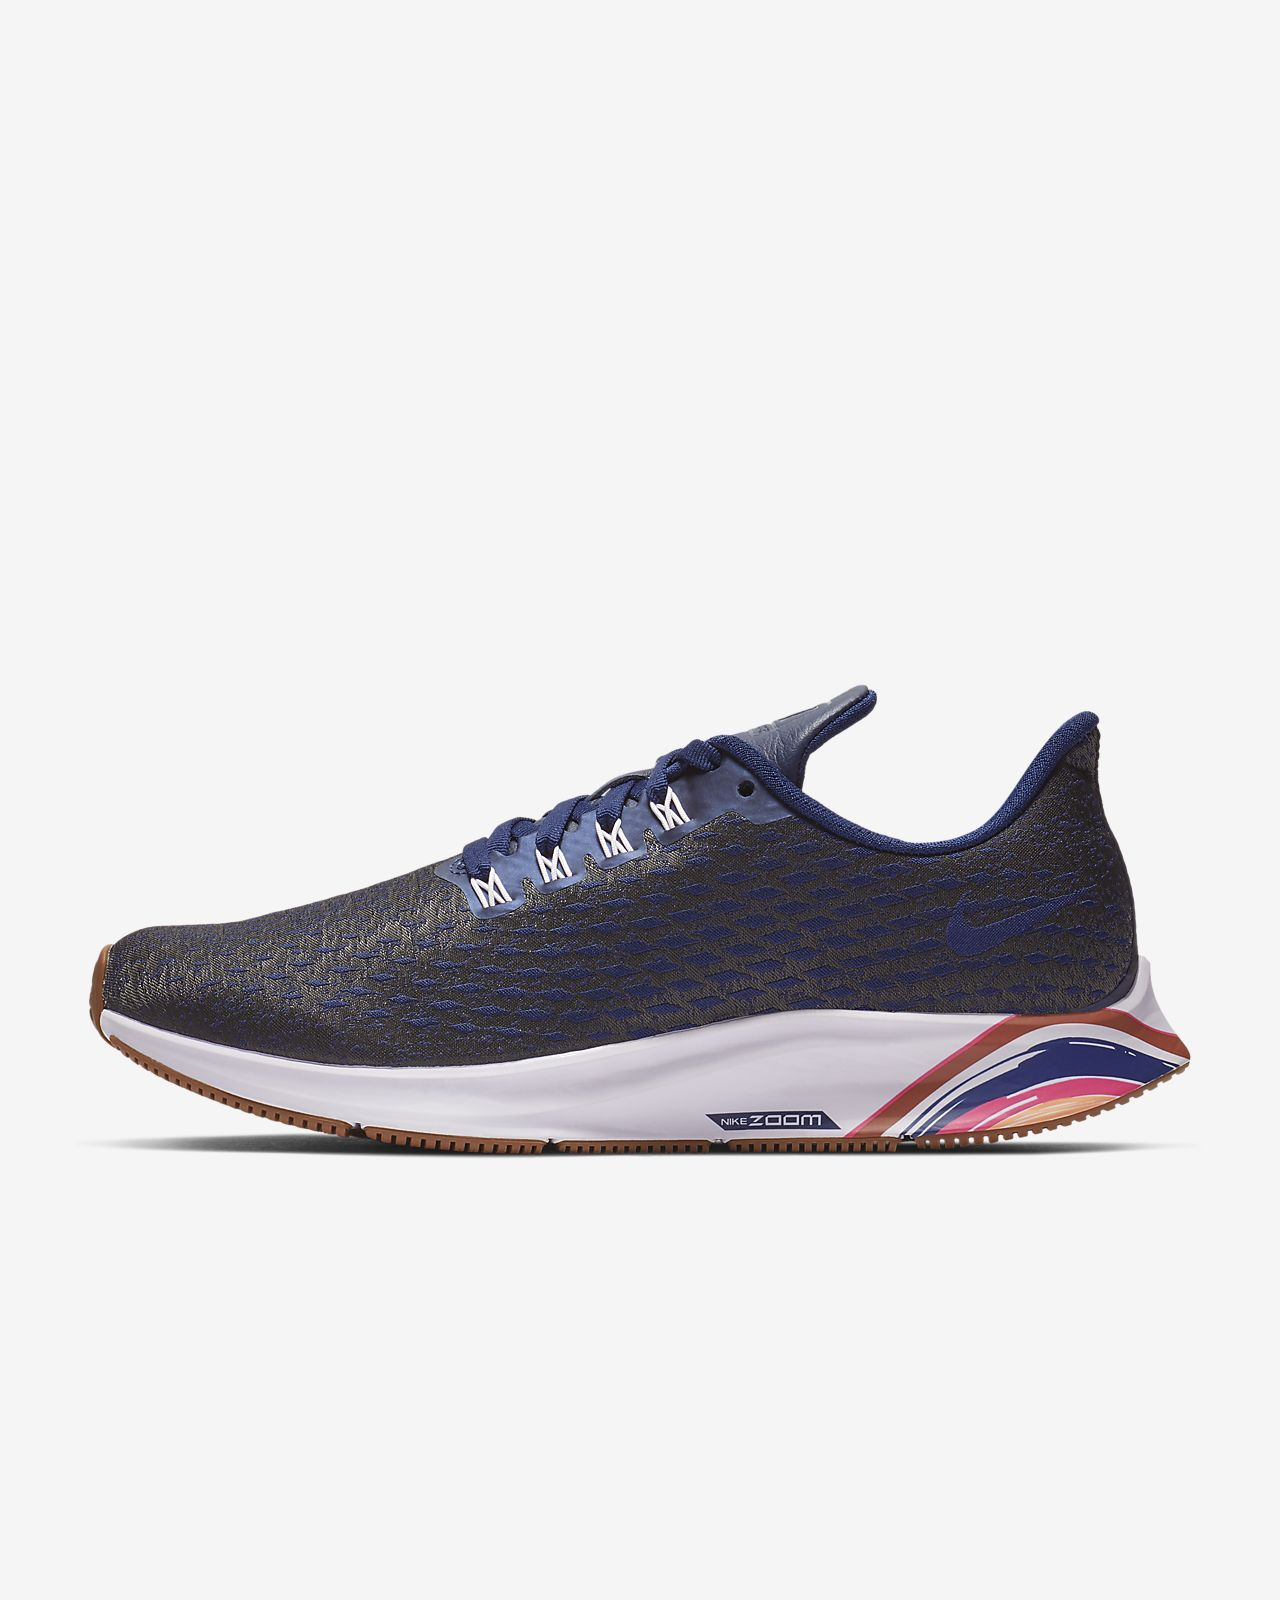 huge discount f335c 49156 Women s Running Shoe. Nike Air Zoom Pegasus 35 Premium